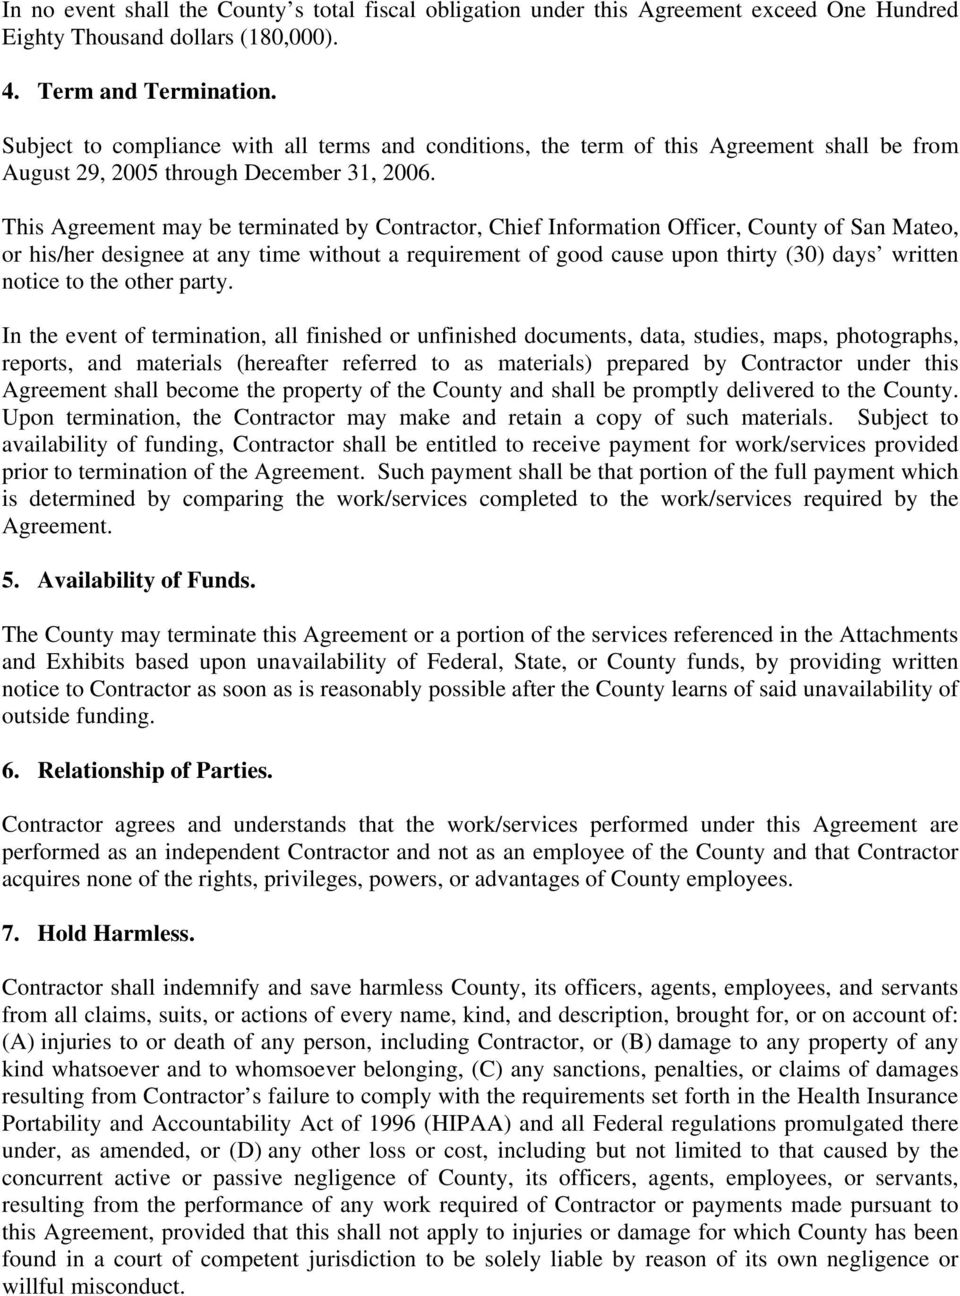 This Agreement may be terminated by Contractor, Chief Information Officer, County of San Mateo, or his/her designee at any time without a requirement of good cause upon thirty (30) days written